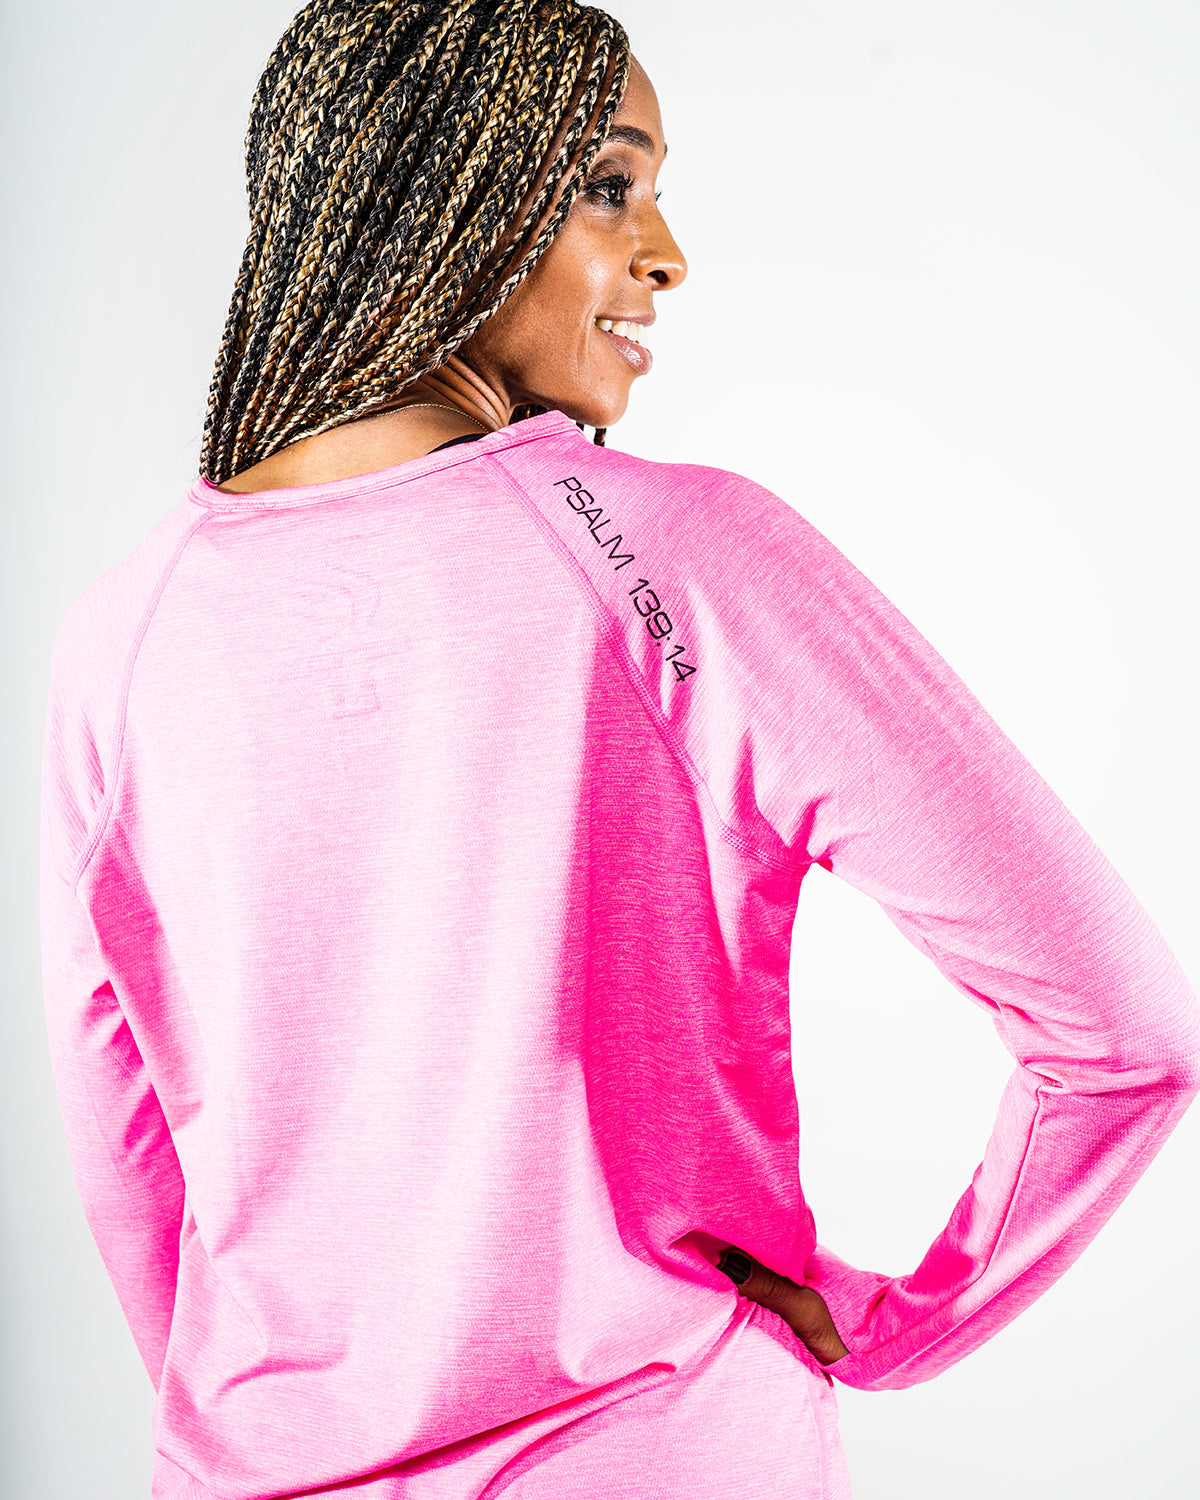 Women's Longsleeve Psalm 139:14 Performance Shirt